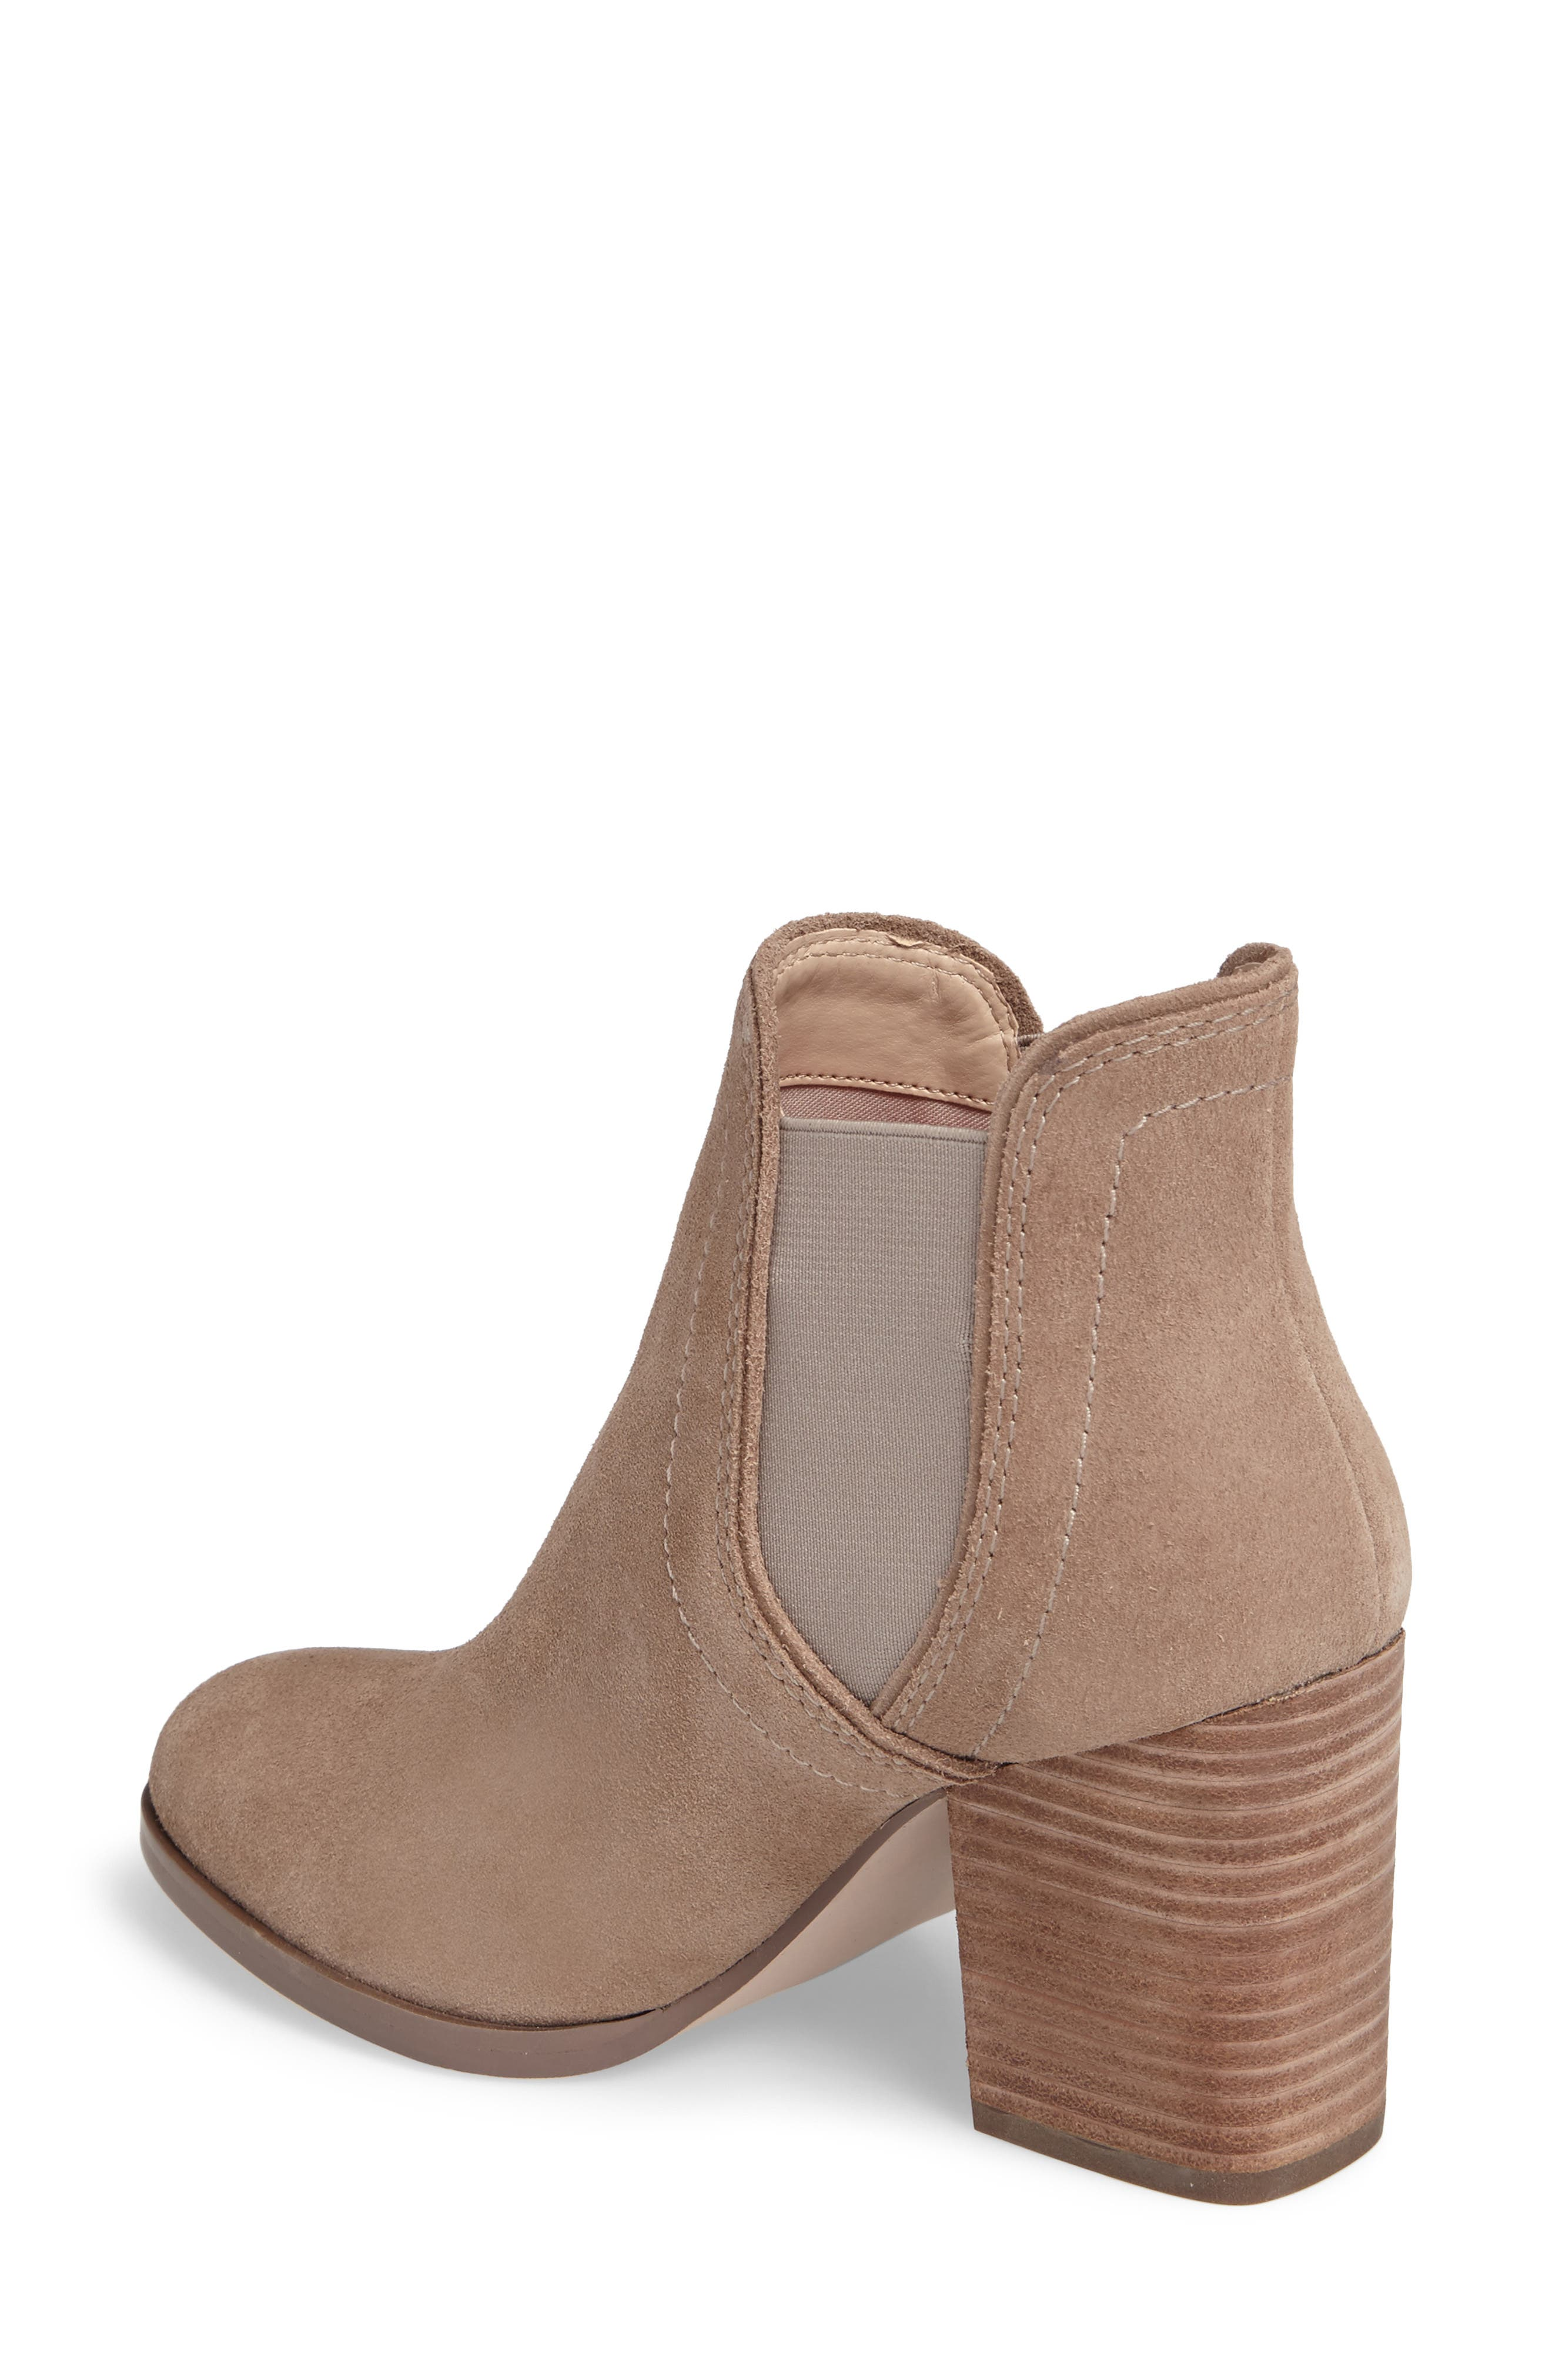 Carrillo Bootie,                             Alternate thumbnail 2, color,                             203